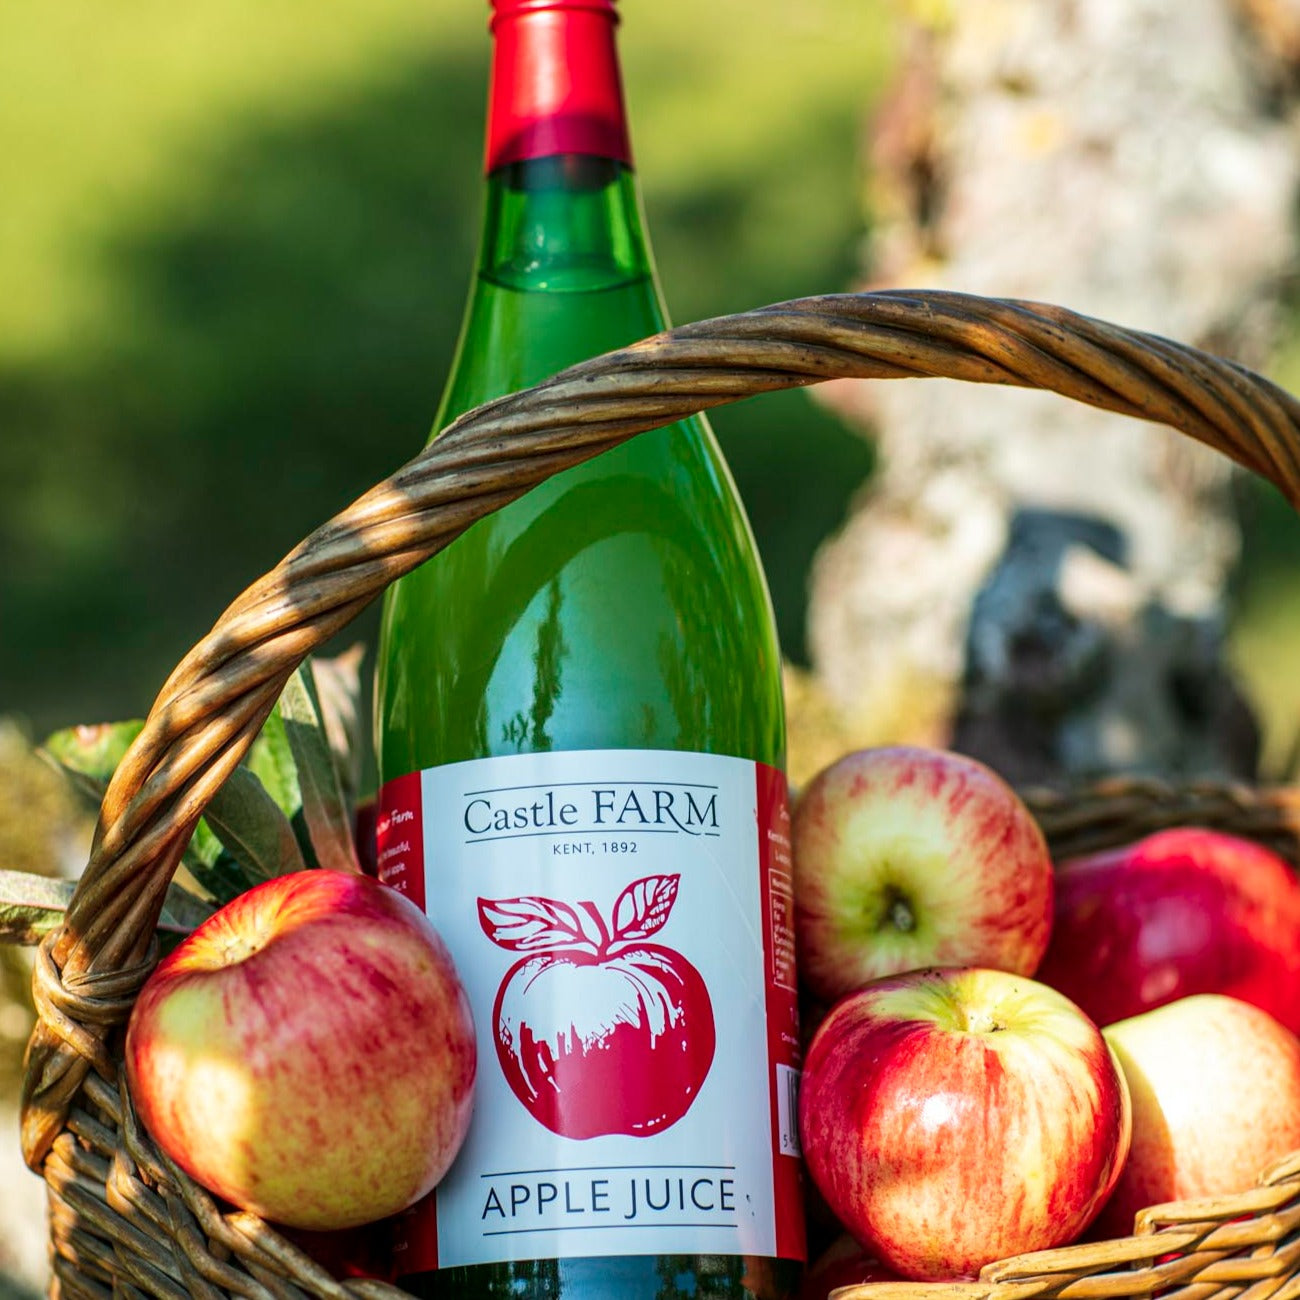 CASTLE FARM APPLE JUICE